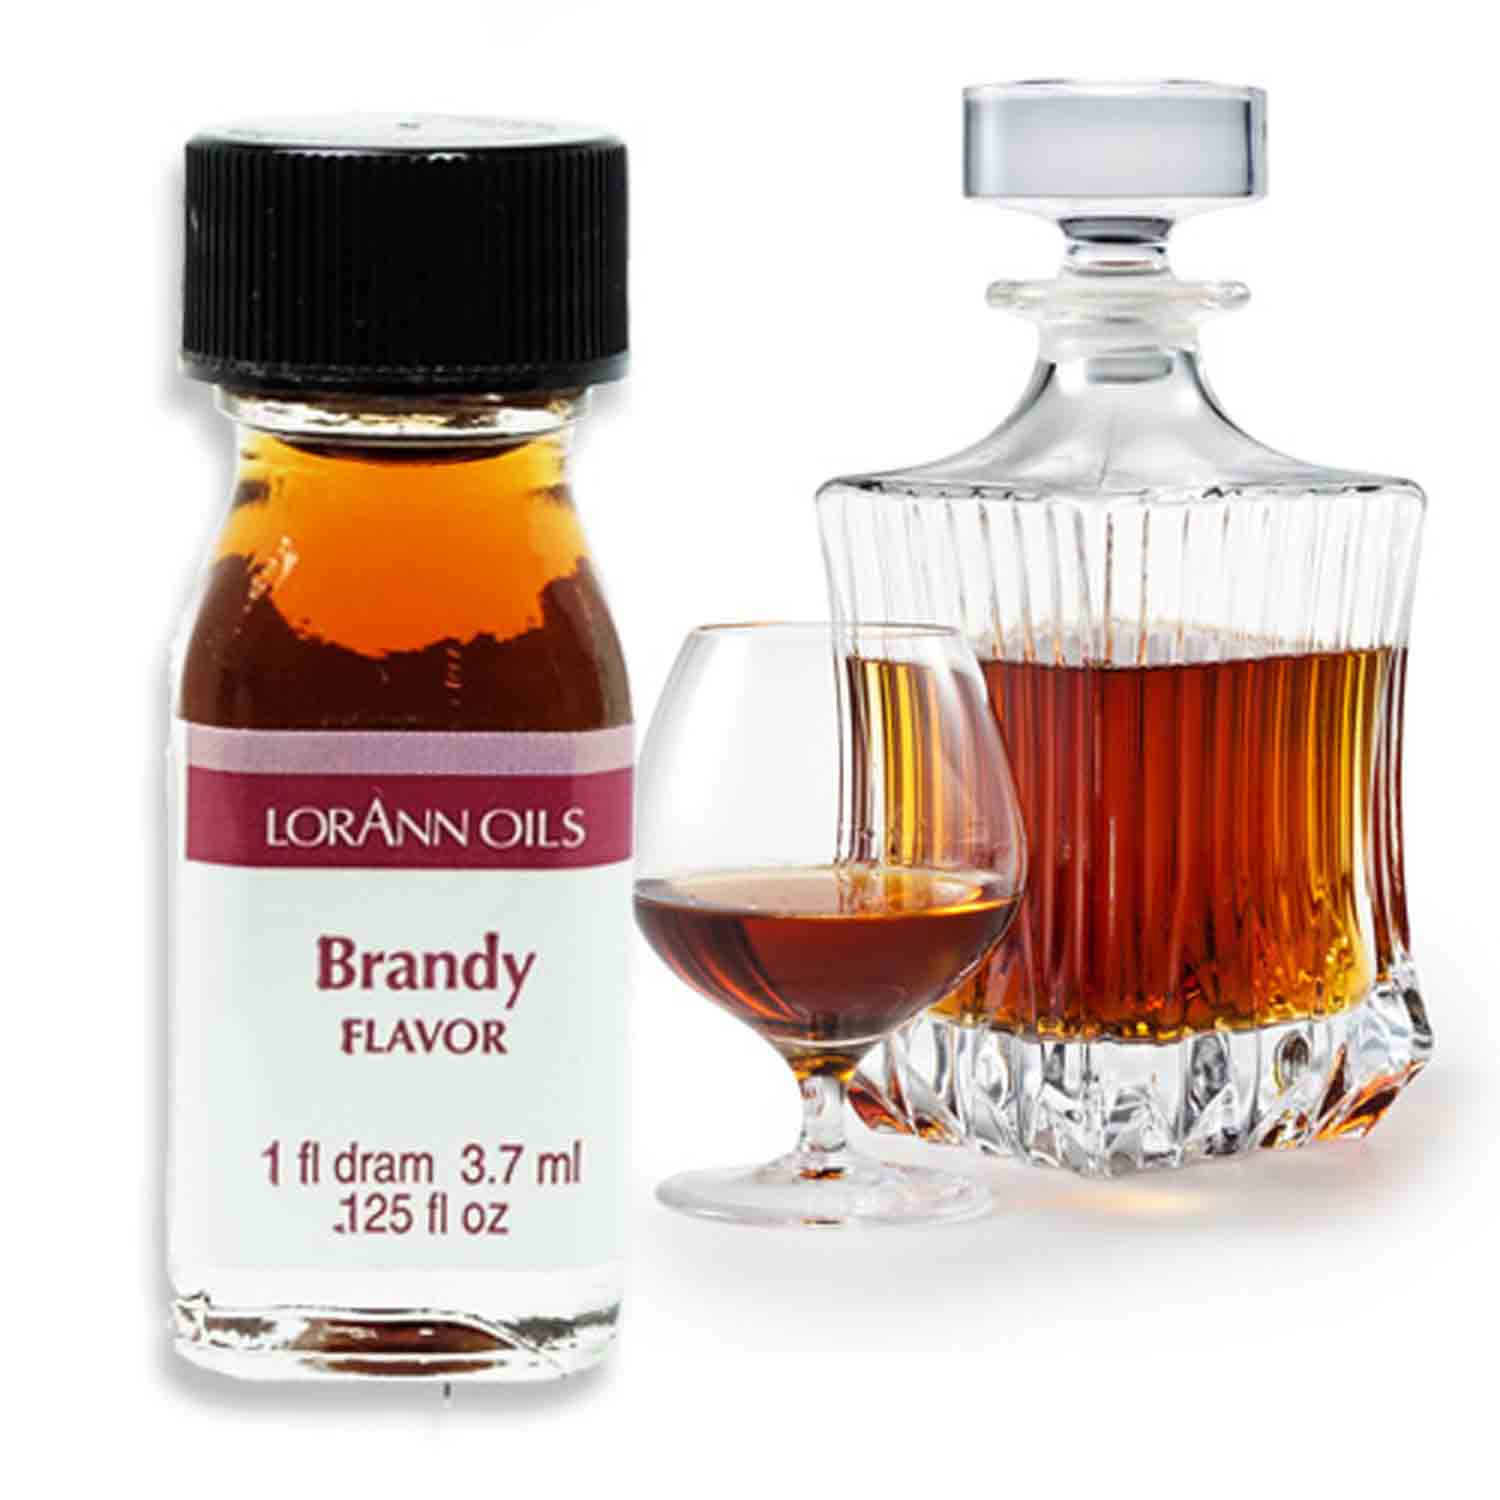 Brandy LorAnn Super-Strength Flavor